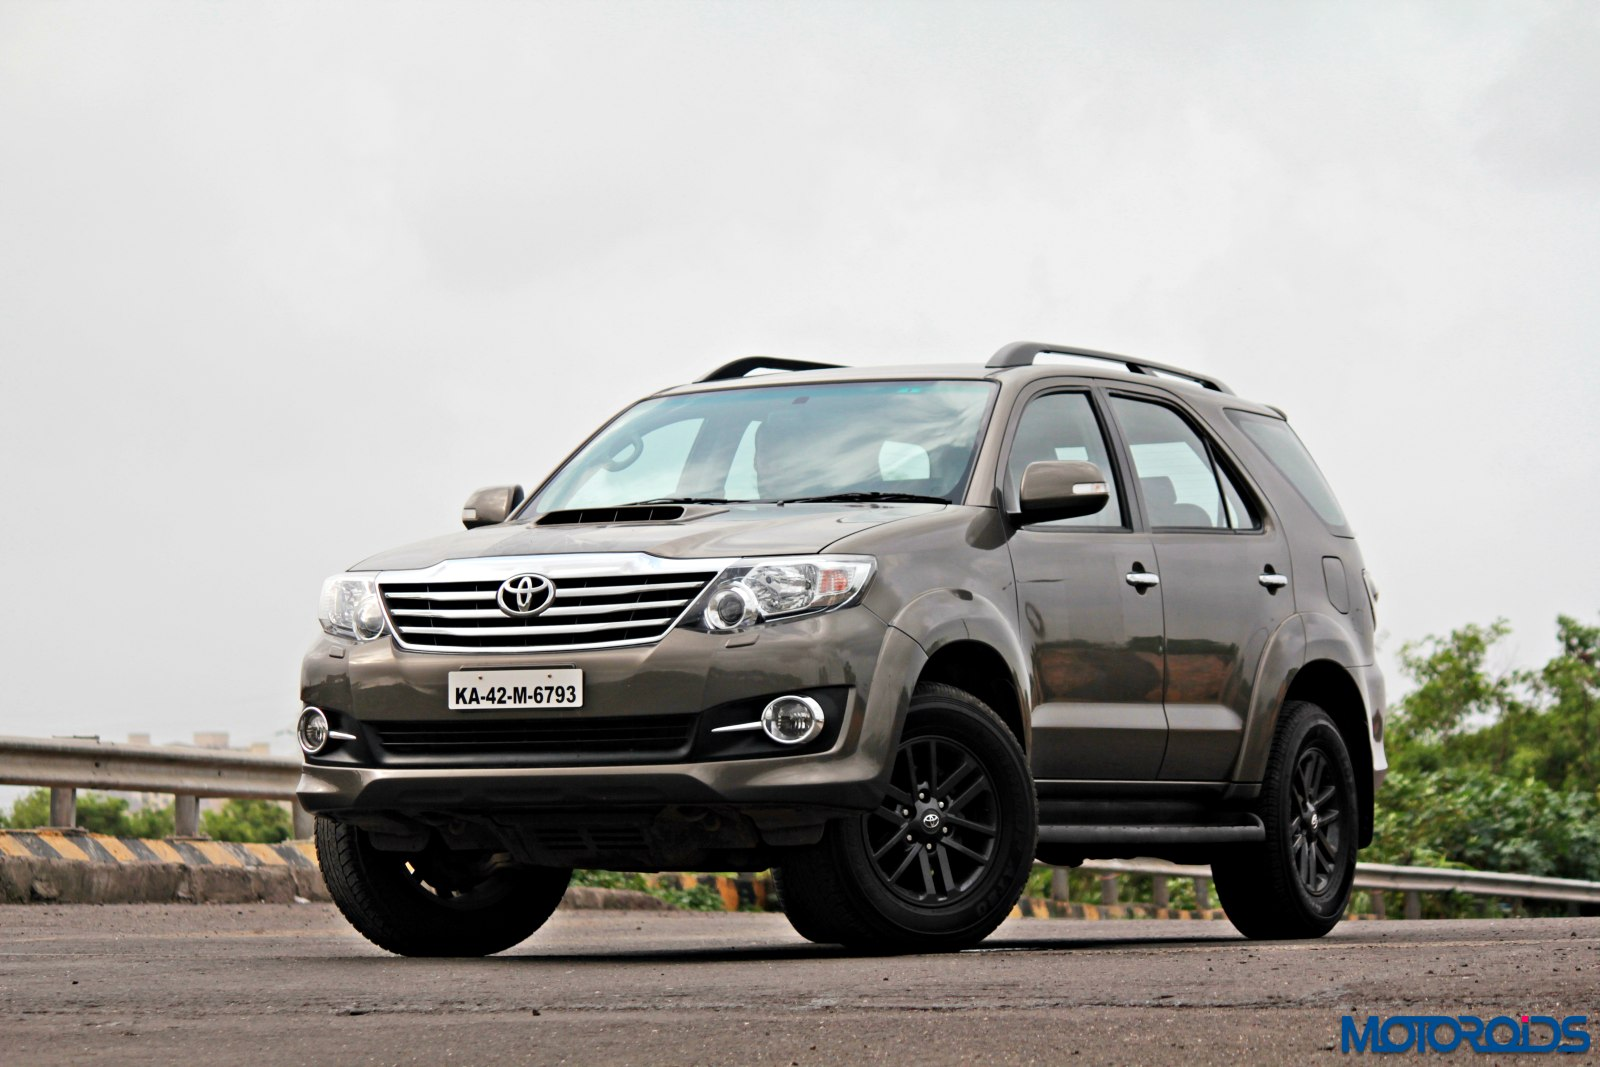 2015 Toyota Fortuner 3 0 4 215 4 At Review Ageless Brawn Motoroids